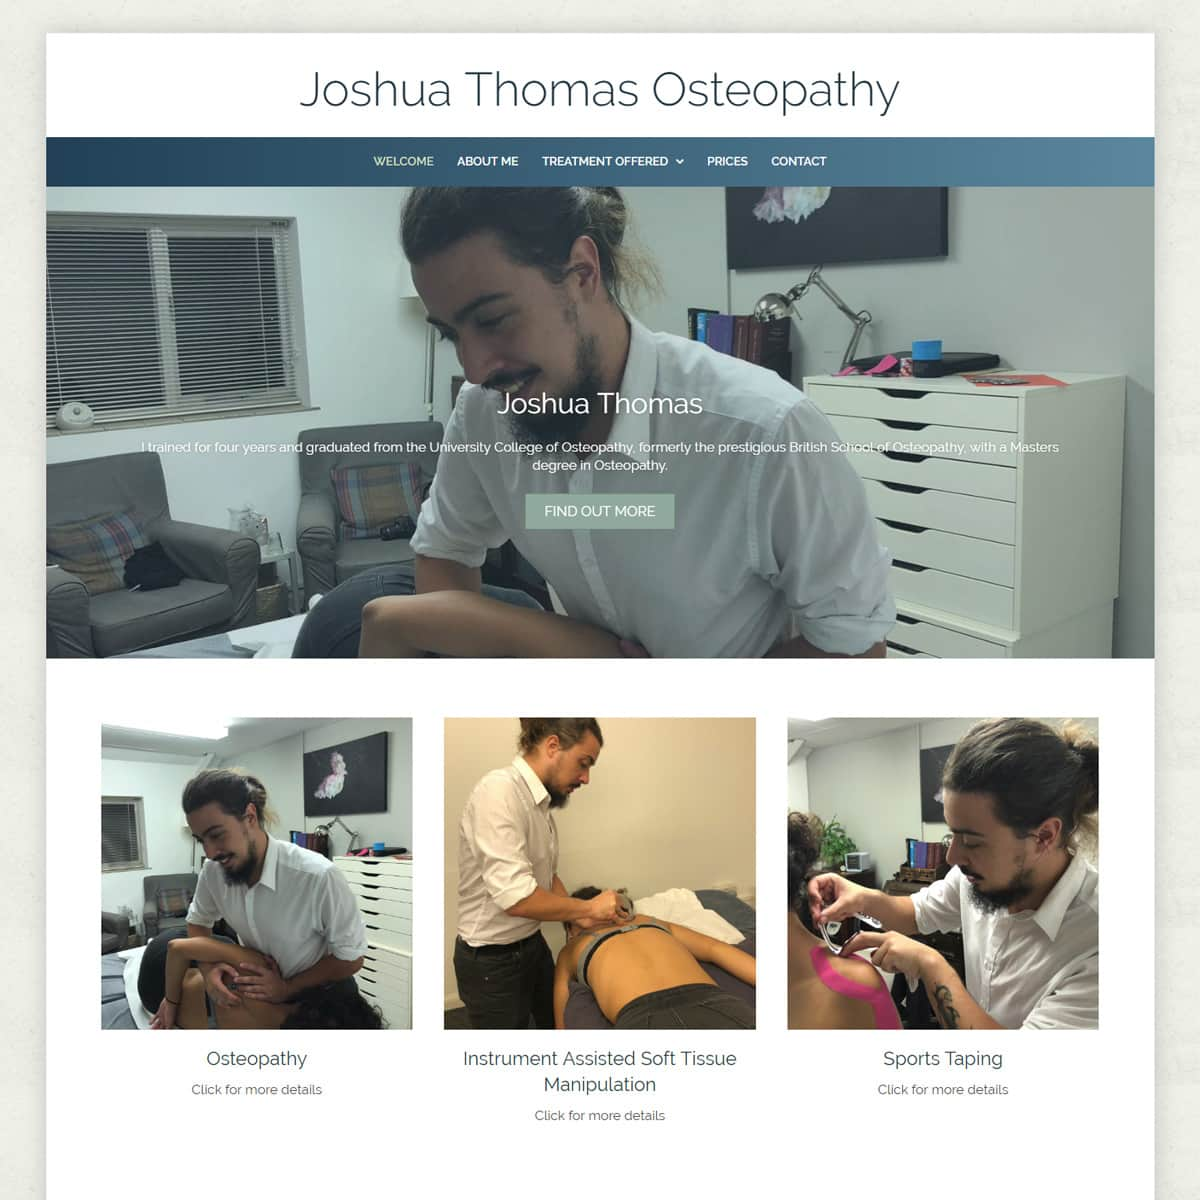 Osteopathy Website Design - HealthHosts - Websites for Therapists